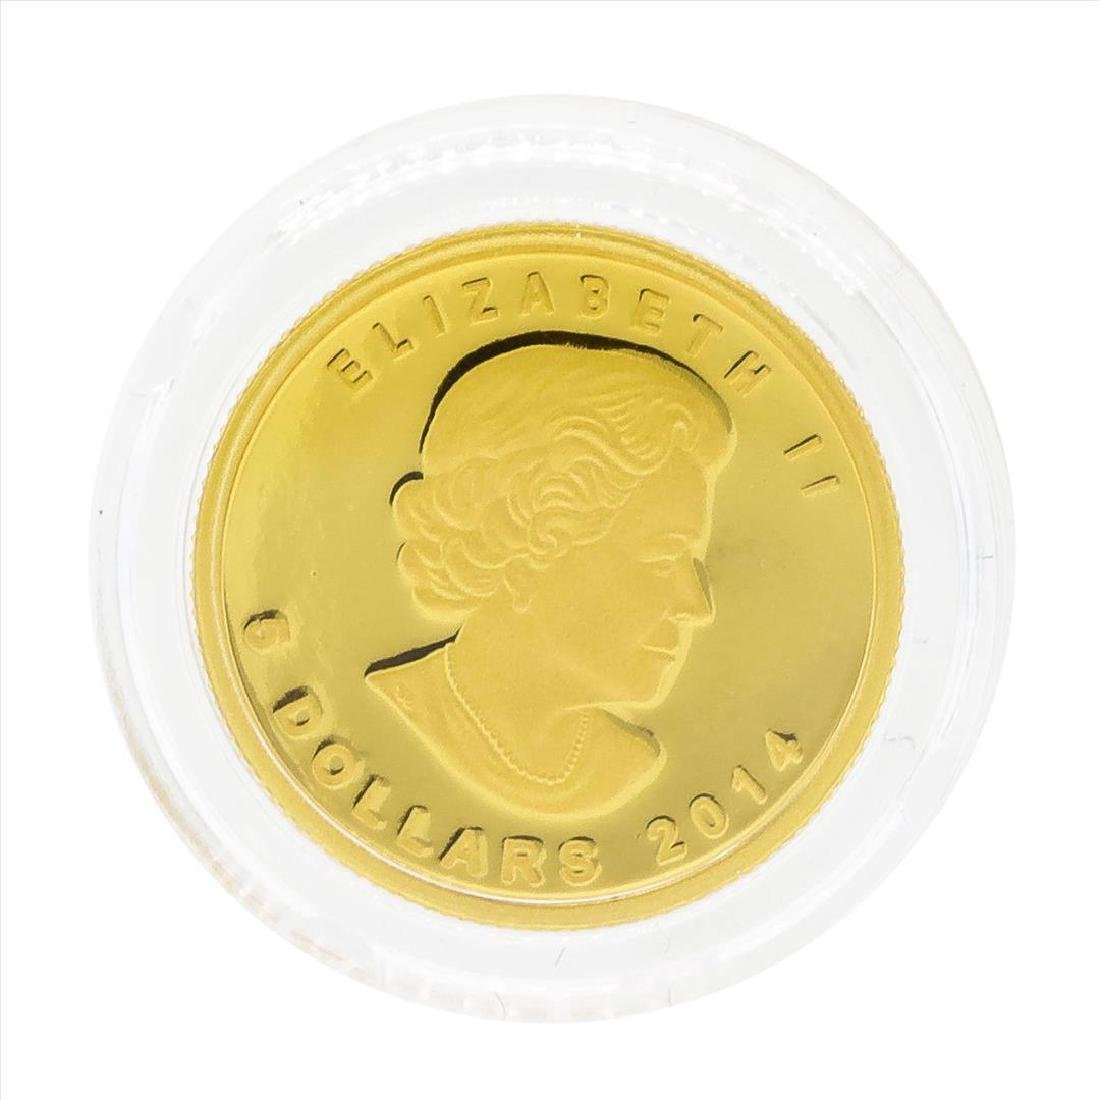 2014 $5 Canada 1/10 oz Woolly Mammoth Gold Coin - 3